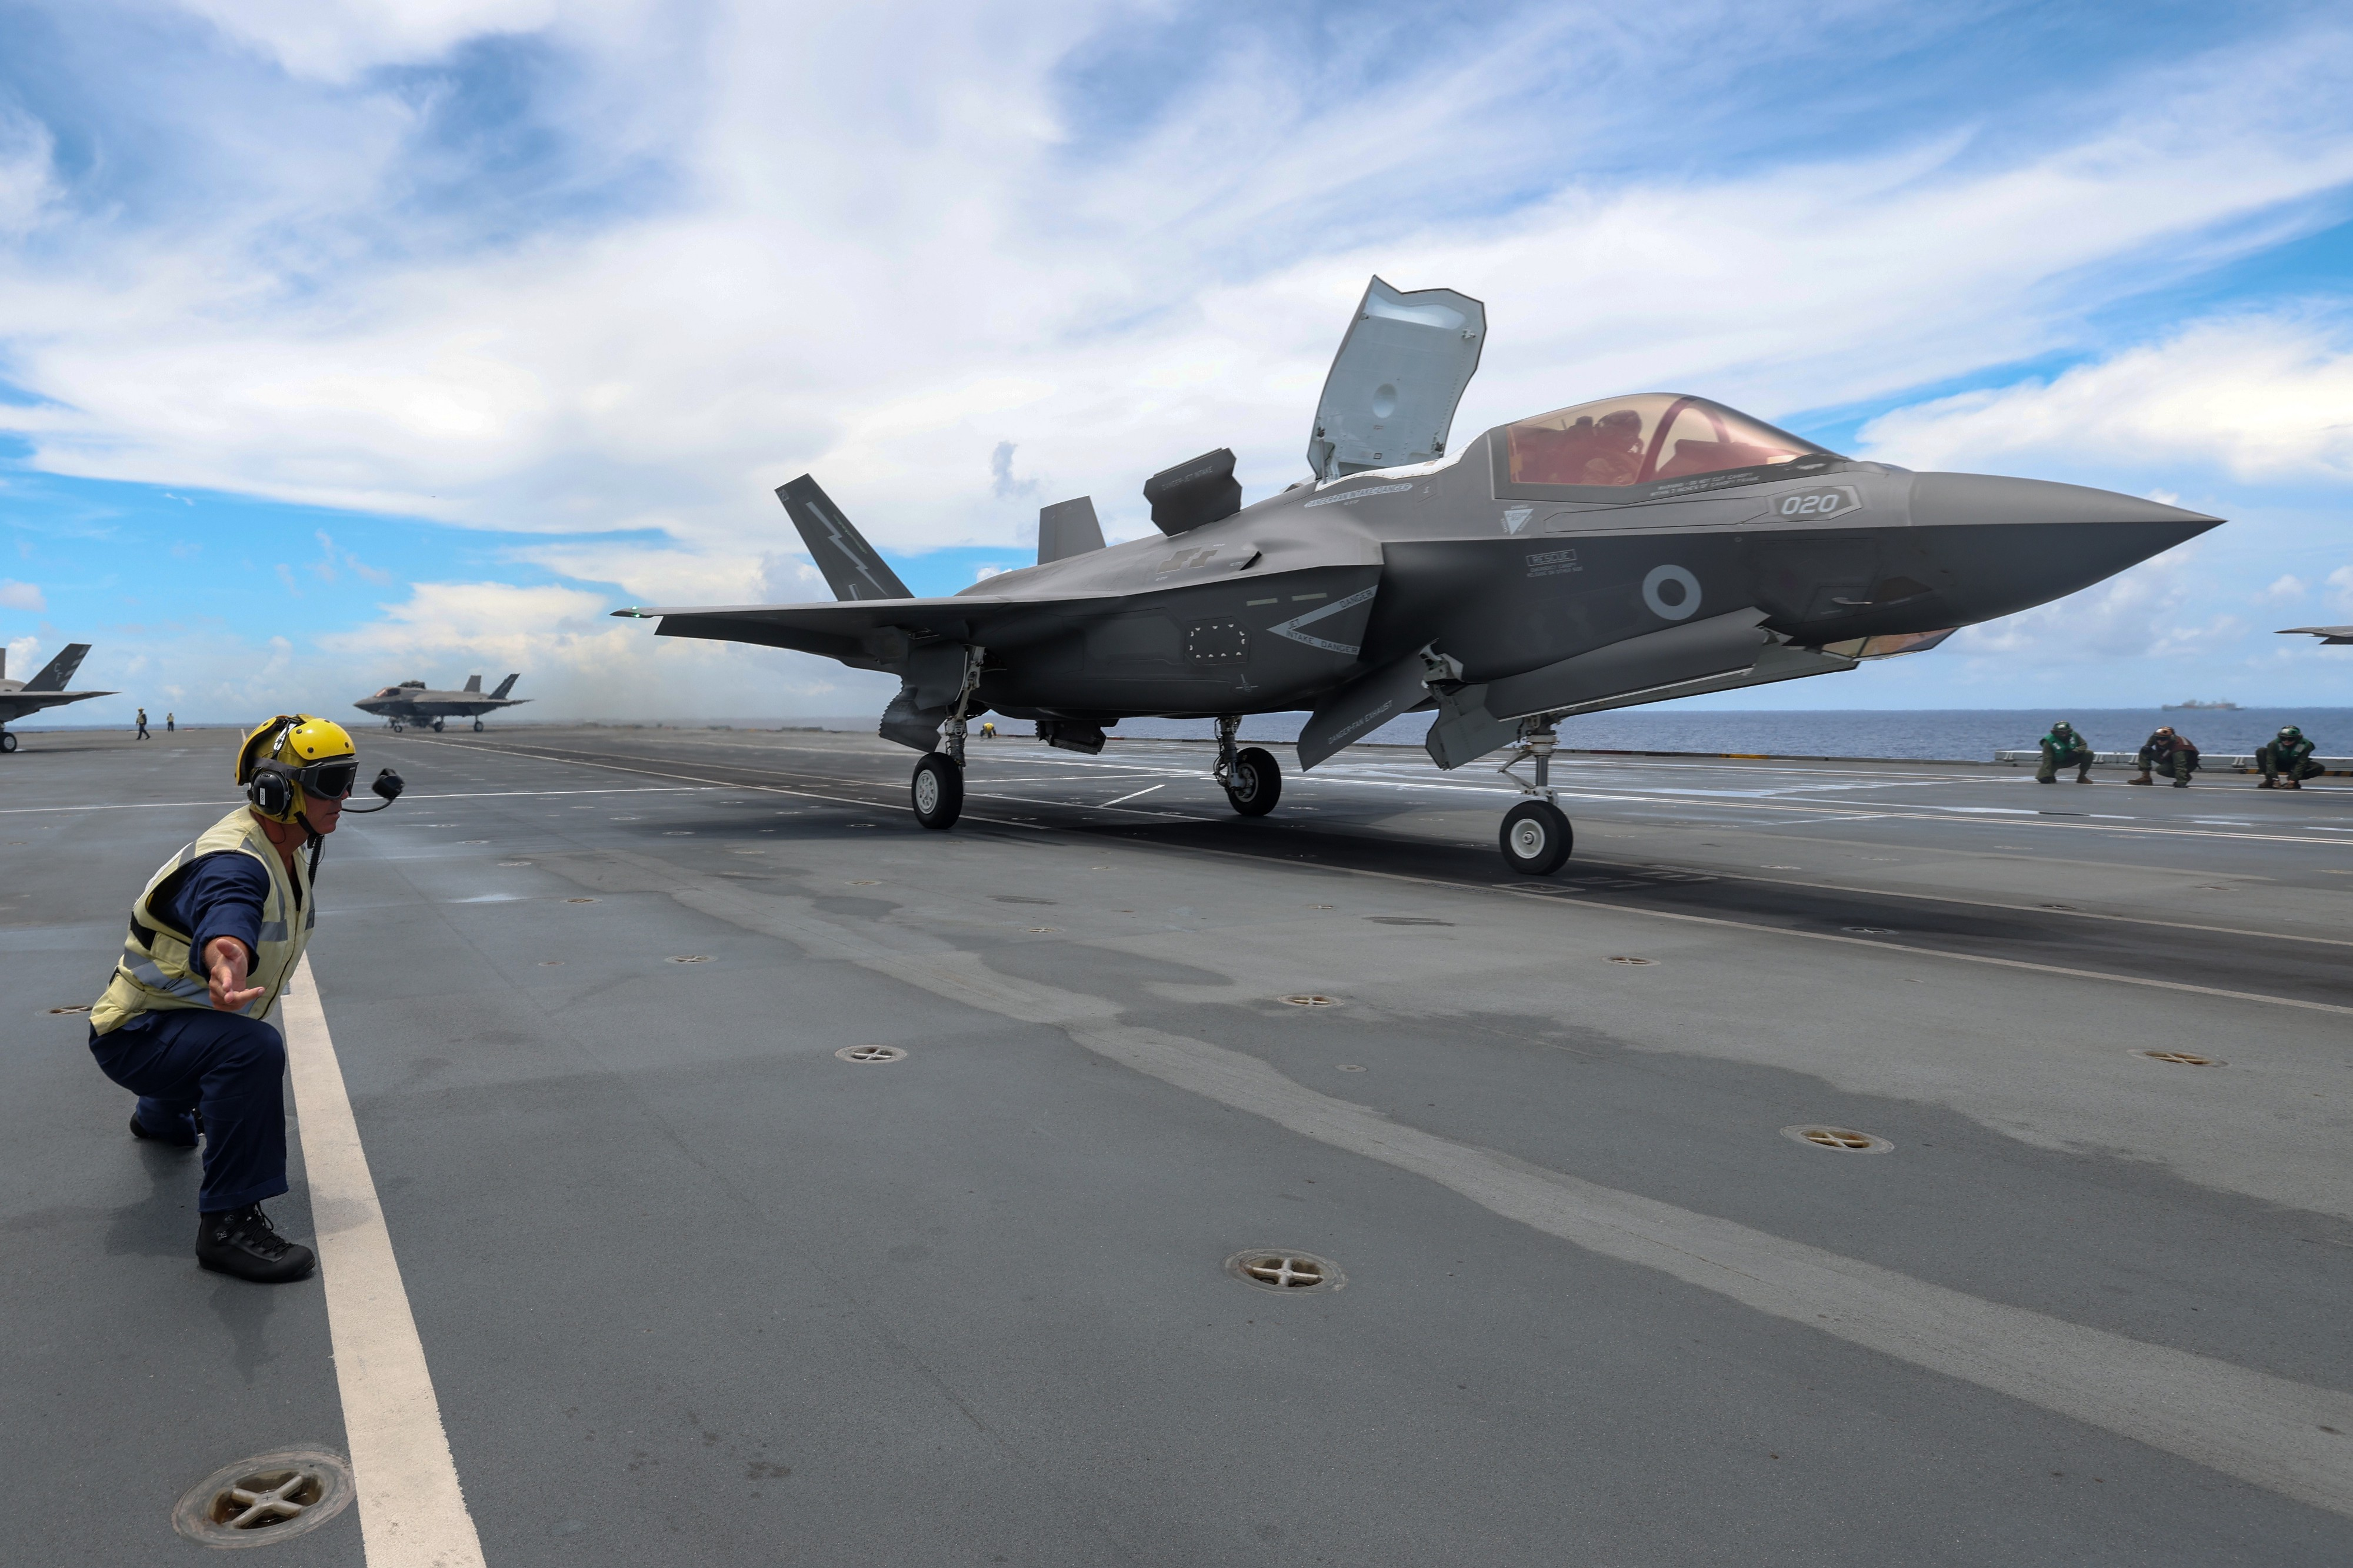 An F-35B fast jet takes off from the flight deck of HMS Queen Elizabeth.